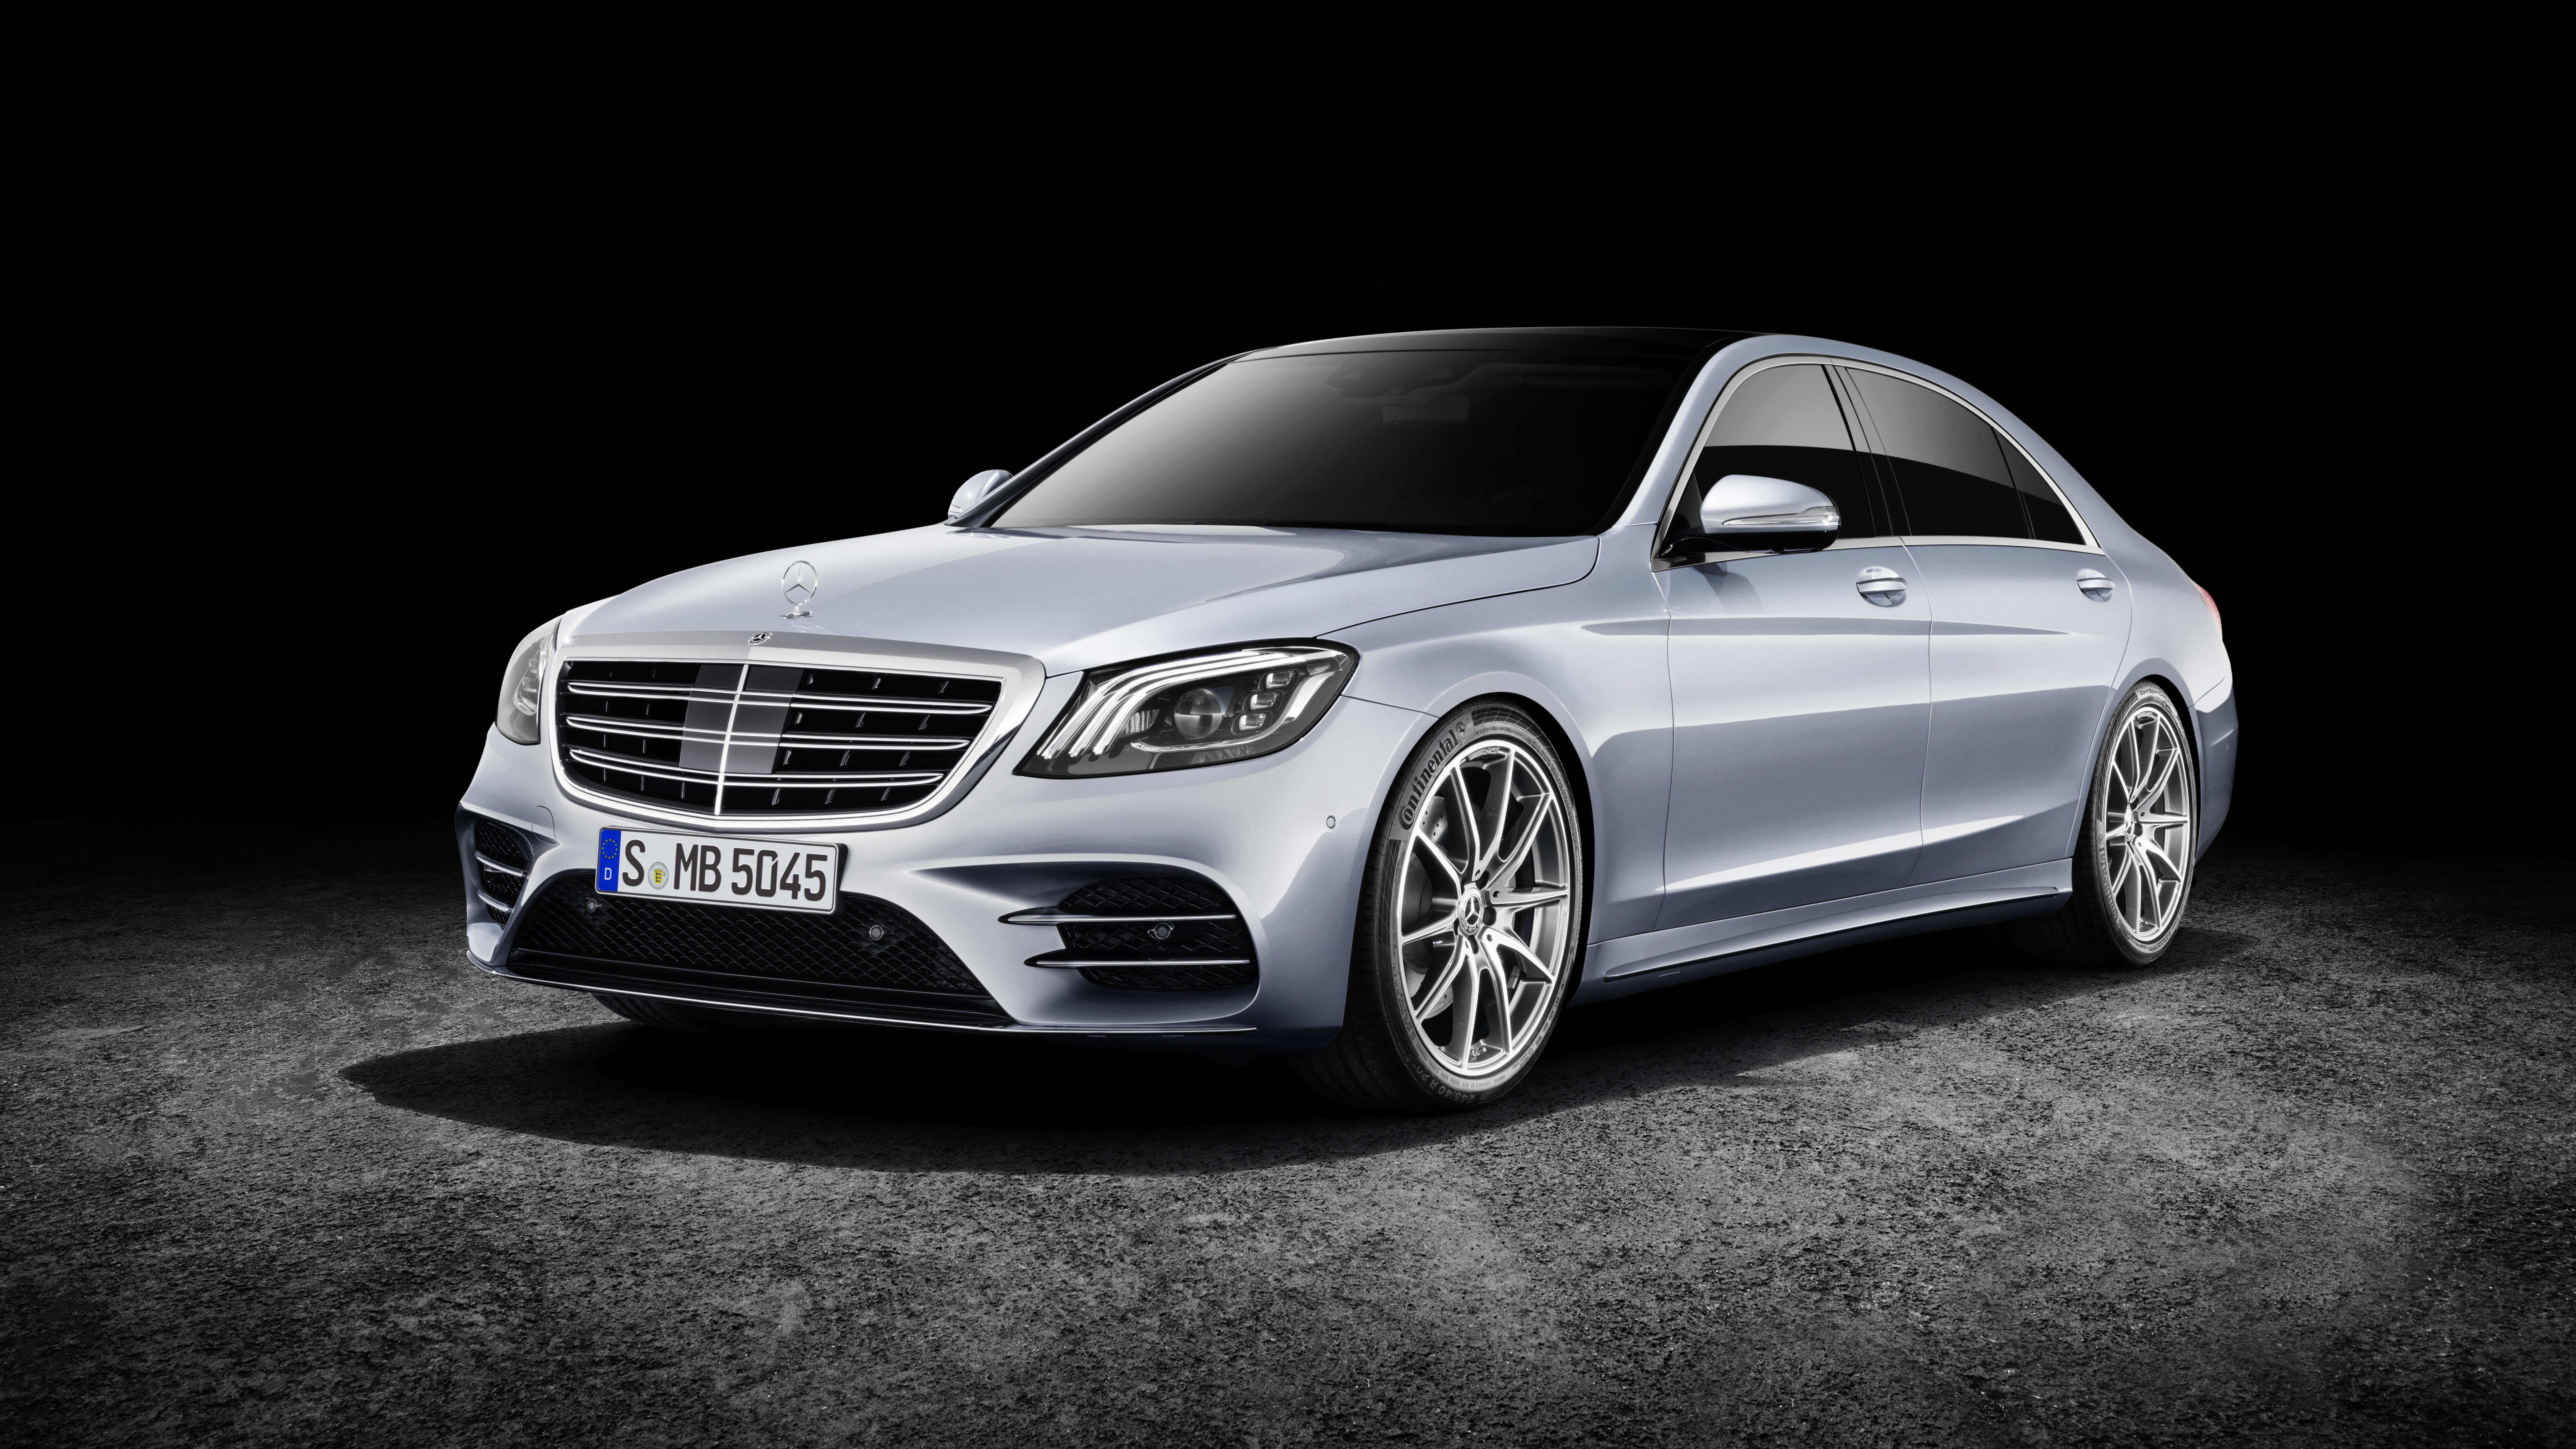 code of ethics of mercedes View inventory build your own shopping tools locations loading.